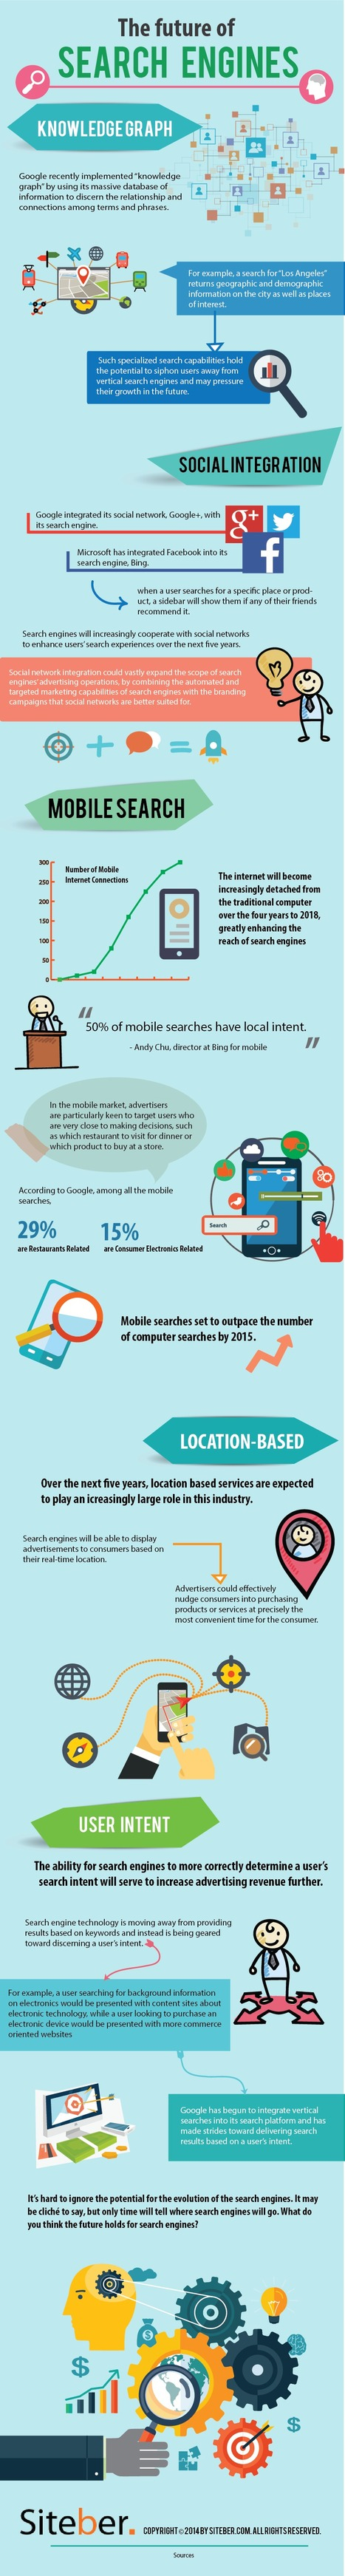 The Future of Search Engines [Infographic] - B2B Infographics | digital divide information | Scoop.it